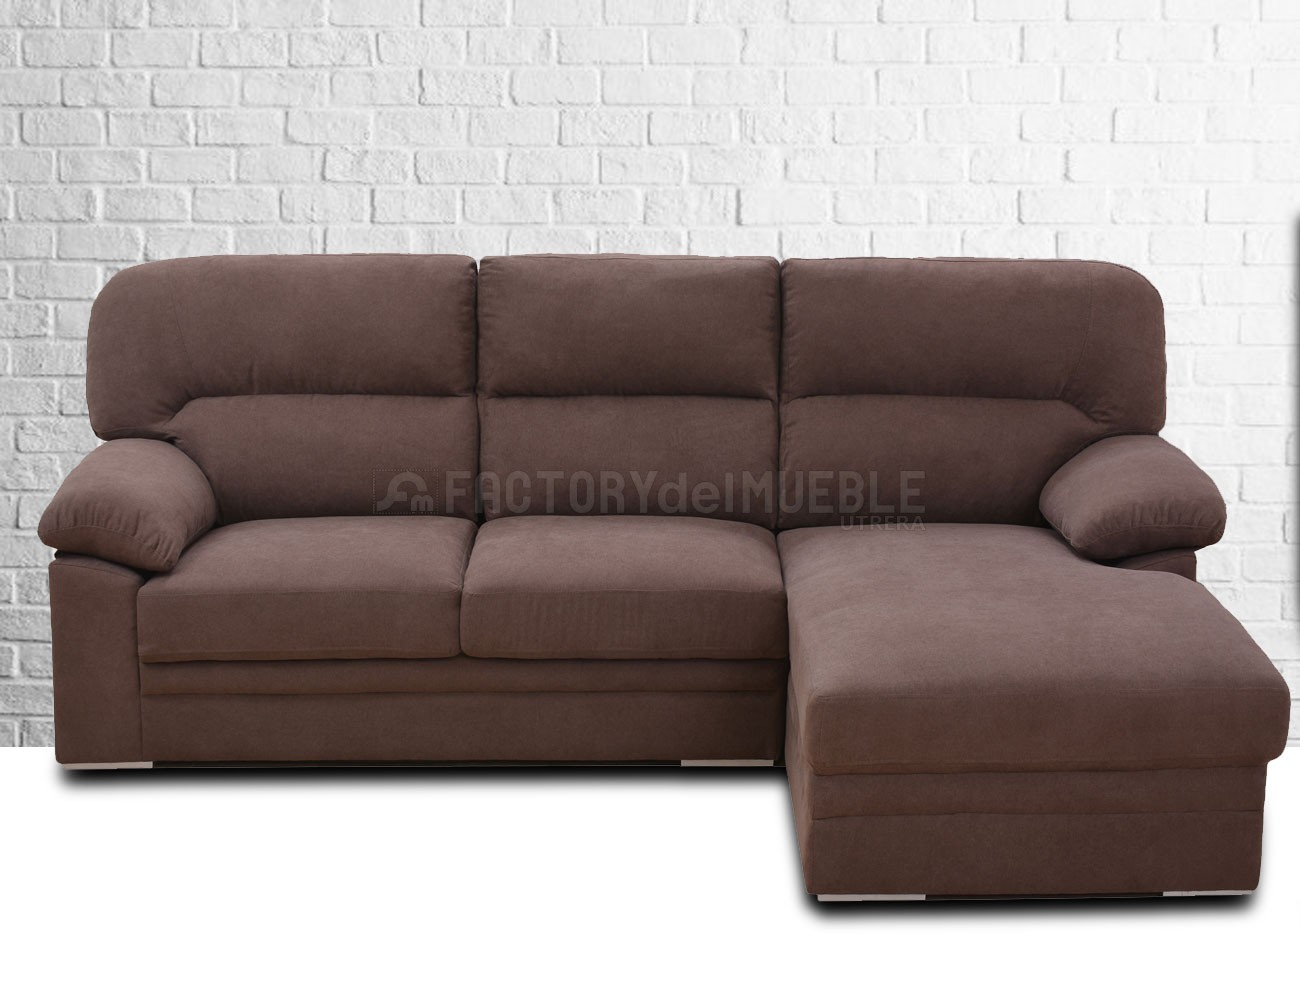 Sofa chaiselongue chocolate